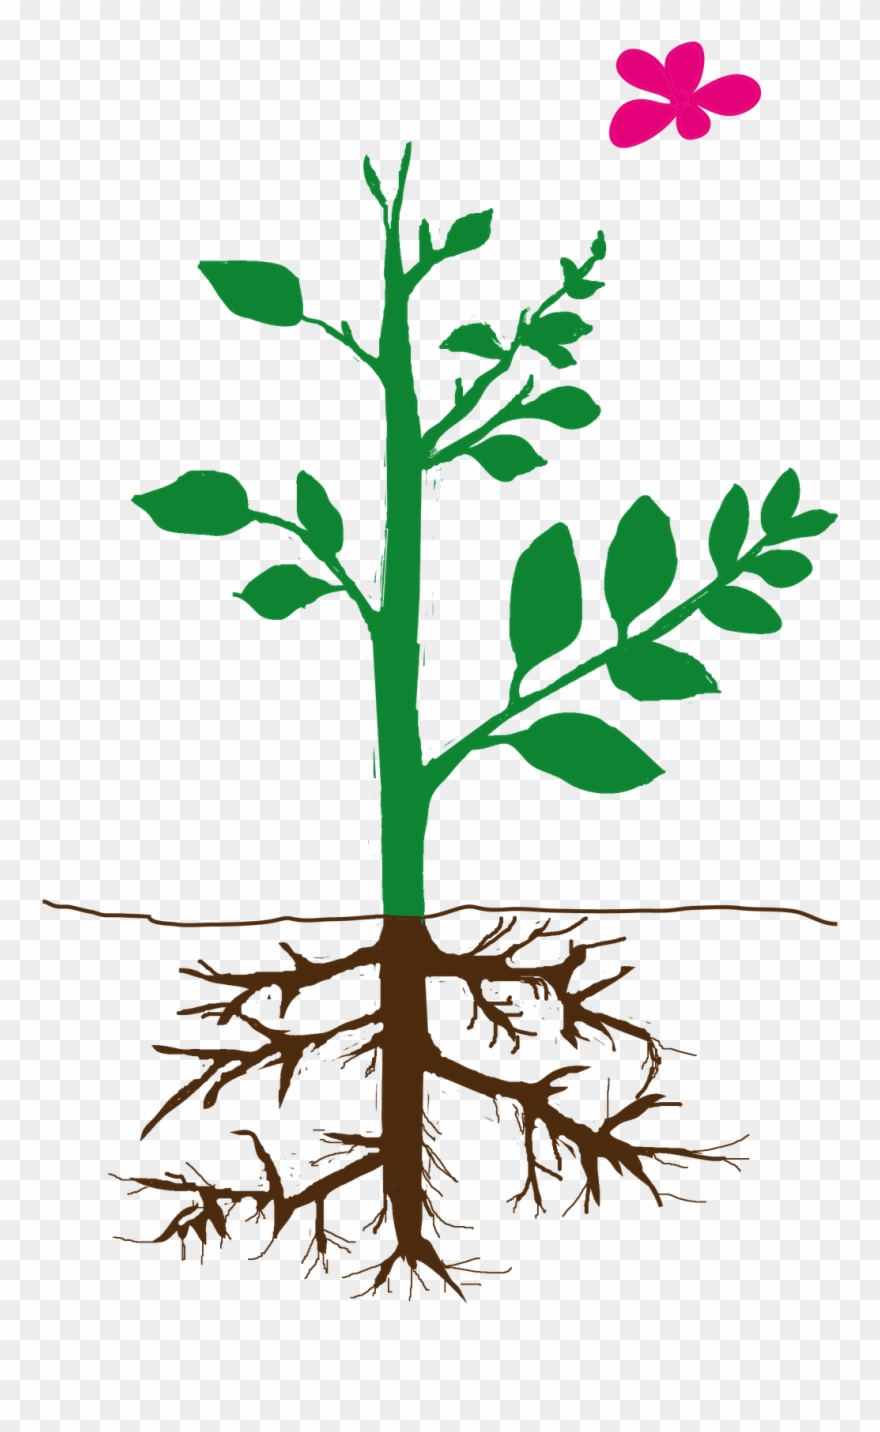 Parts of plant clipart graphic free stock Parts Of Plant Png Clipart (#2113424) - PinClipart graphic free stock